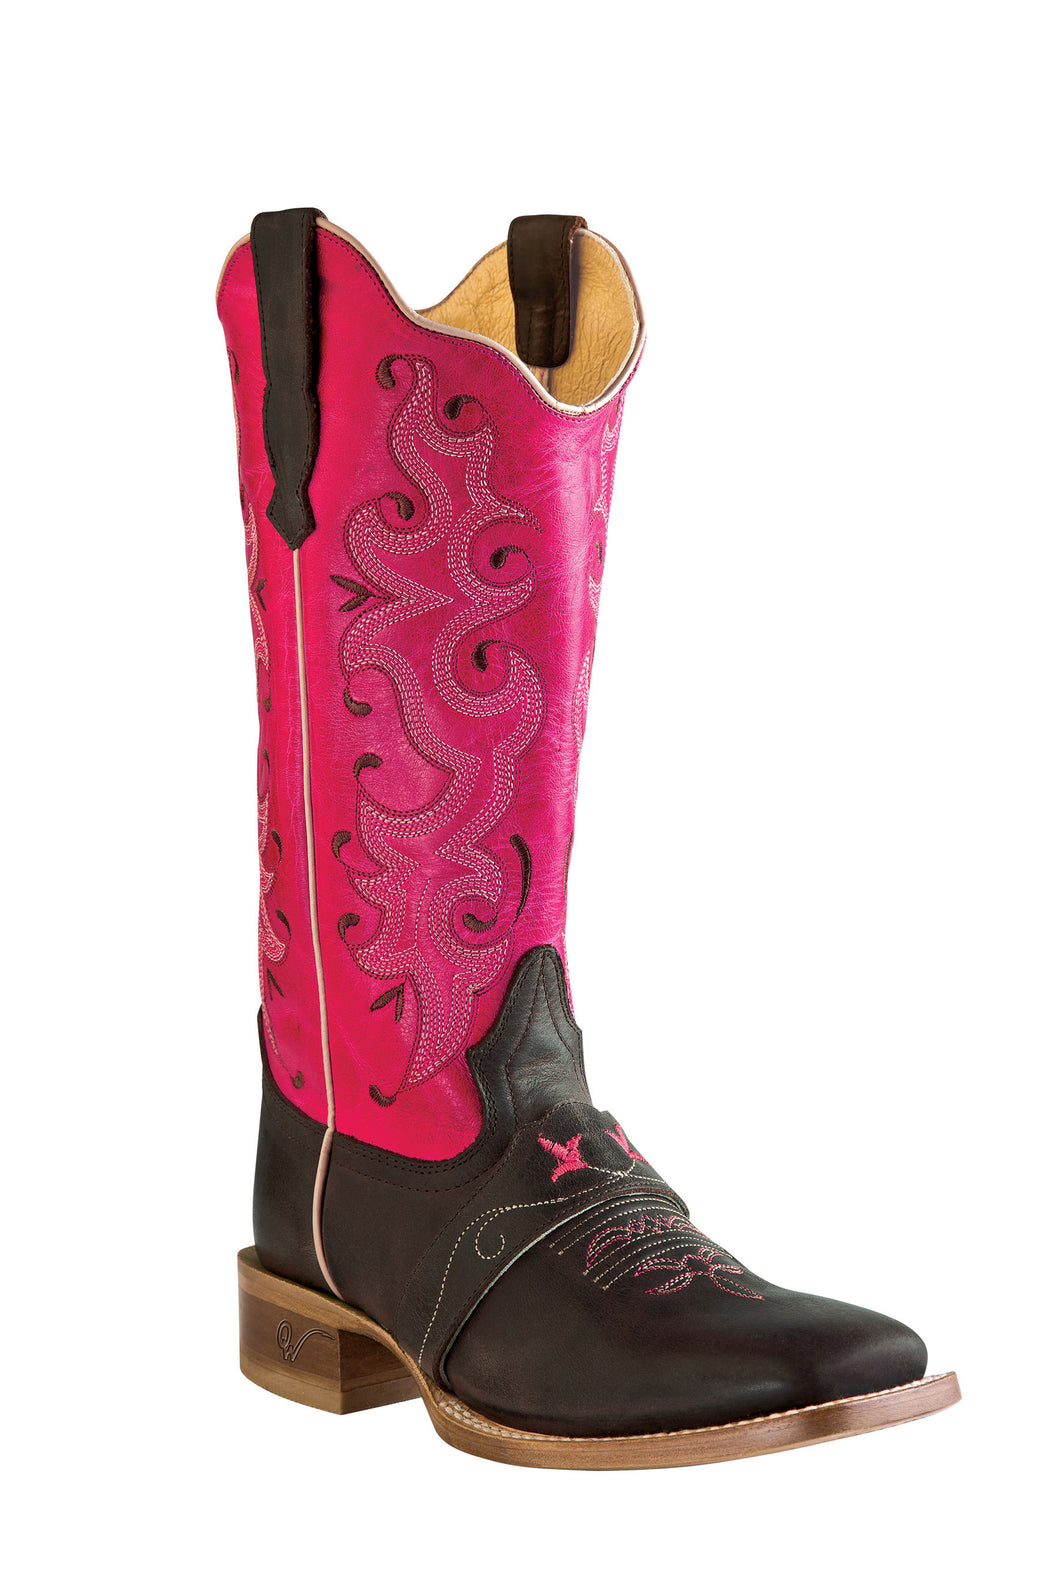 Outlaw Women's Square Toe Boots w/Vamp Strap - Cafe/Fushia (Free Shipping on orders over $120.00)